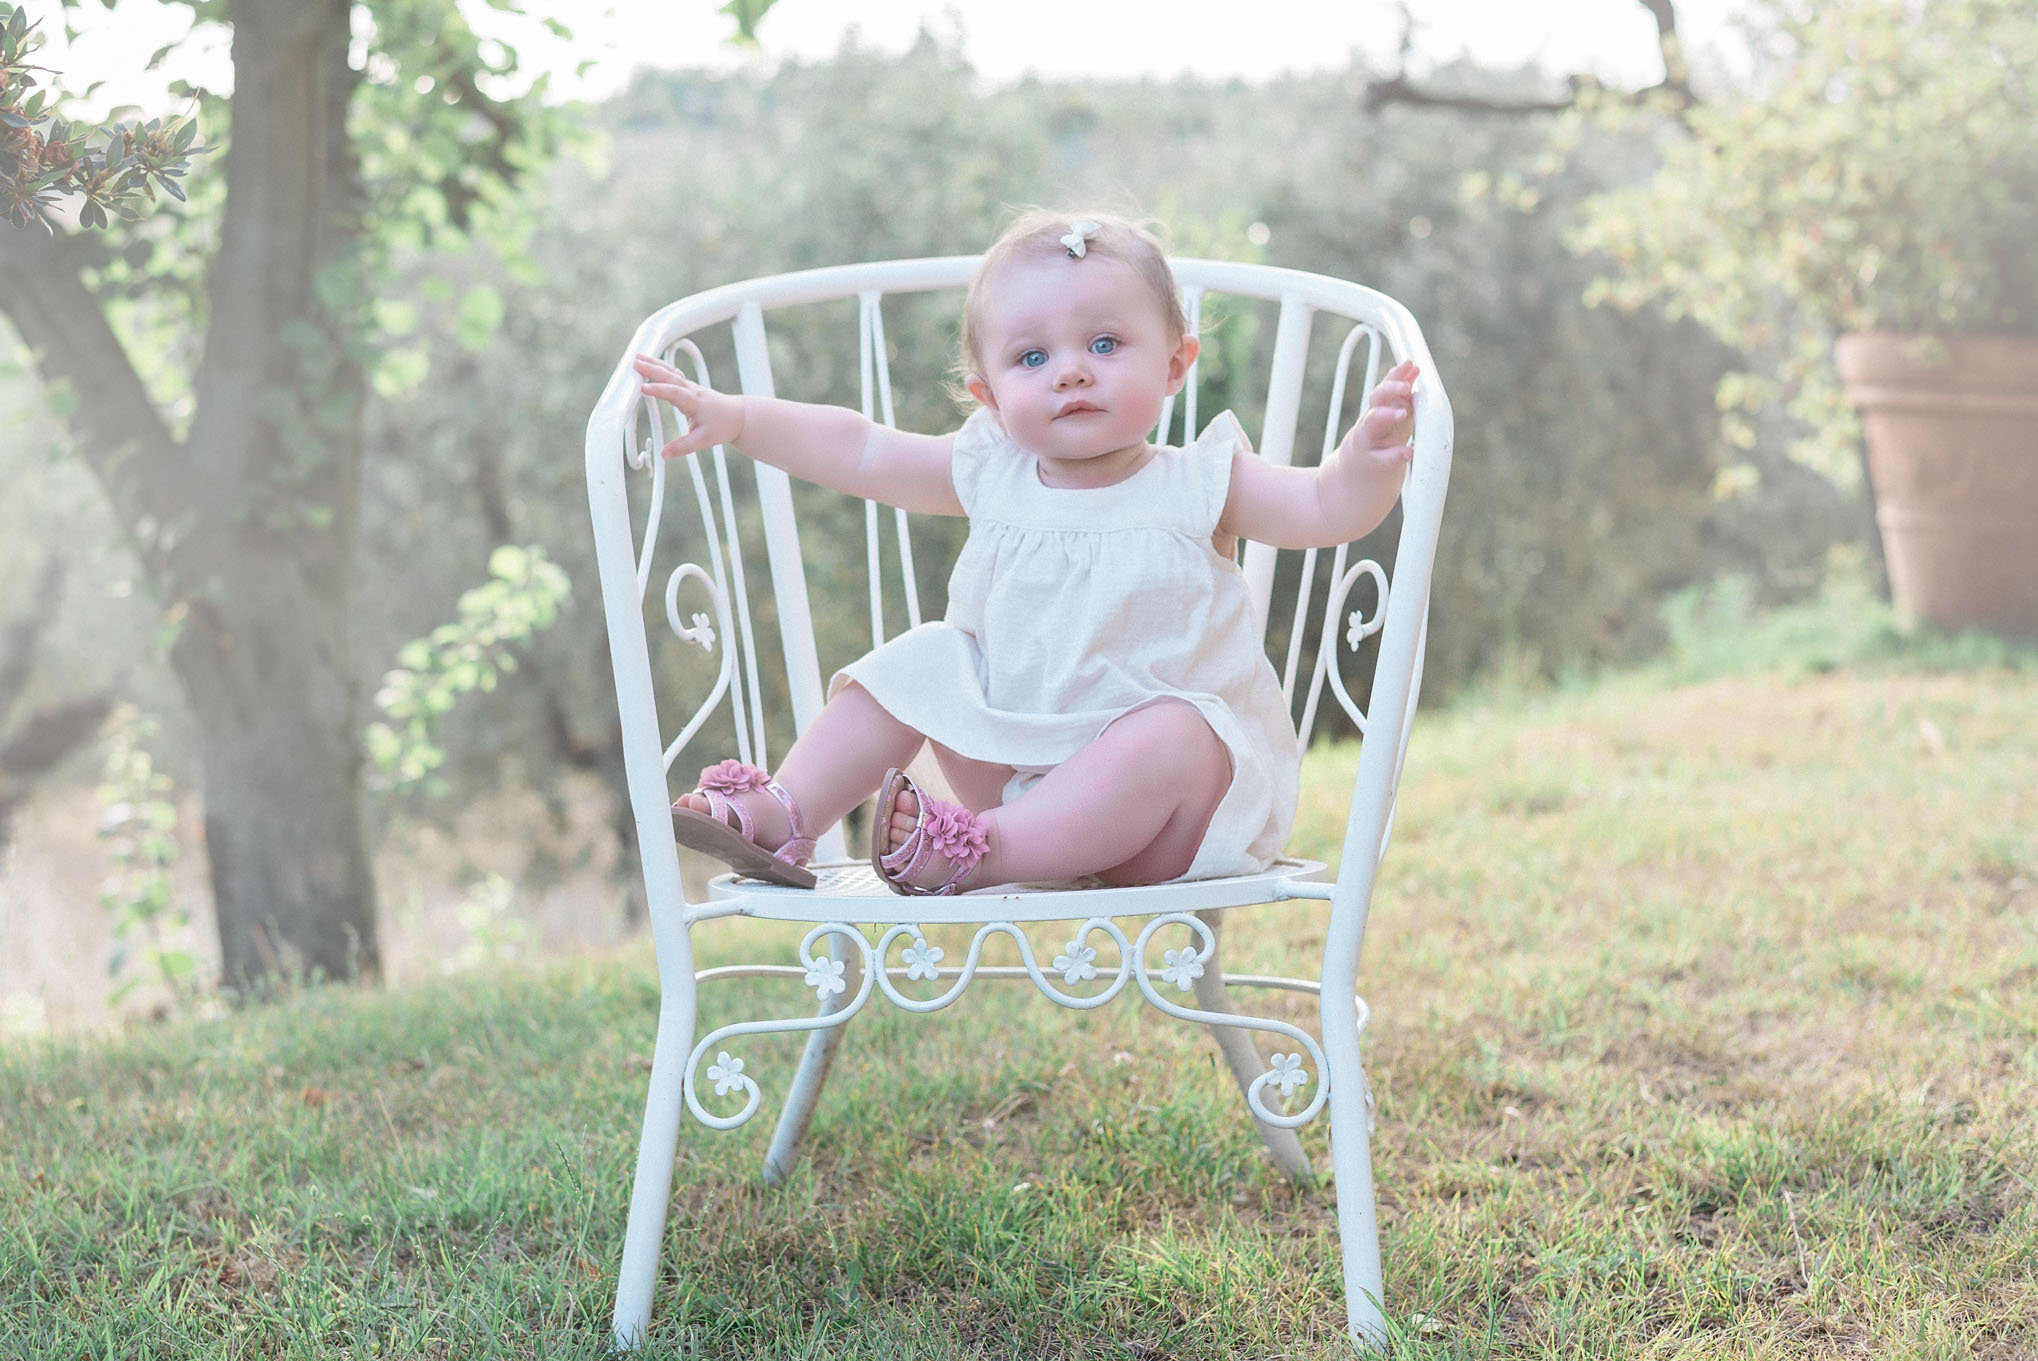 Toddler sat on chair in Tuscany | Children's Photography